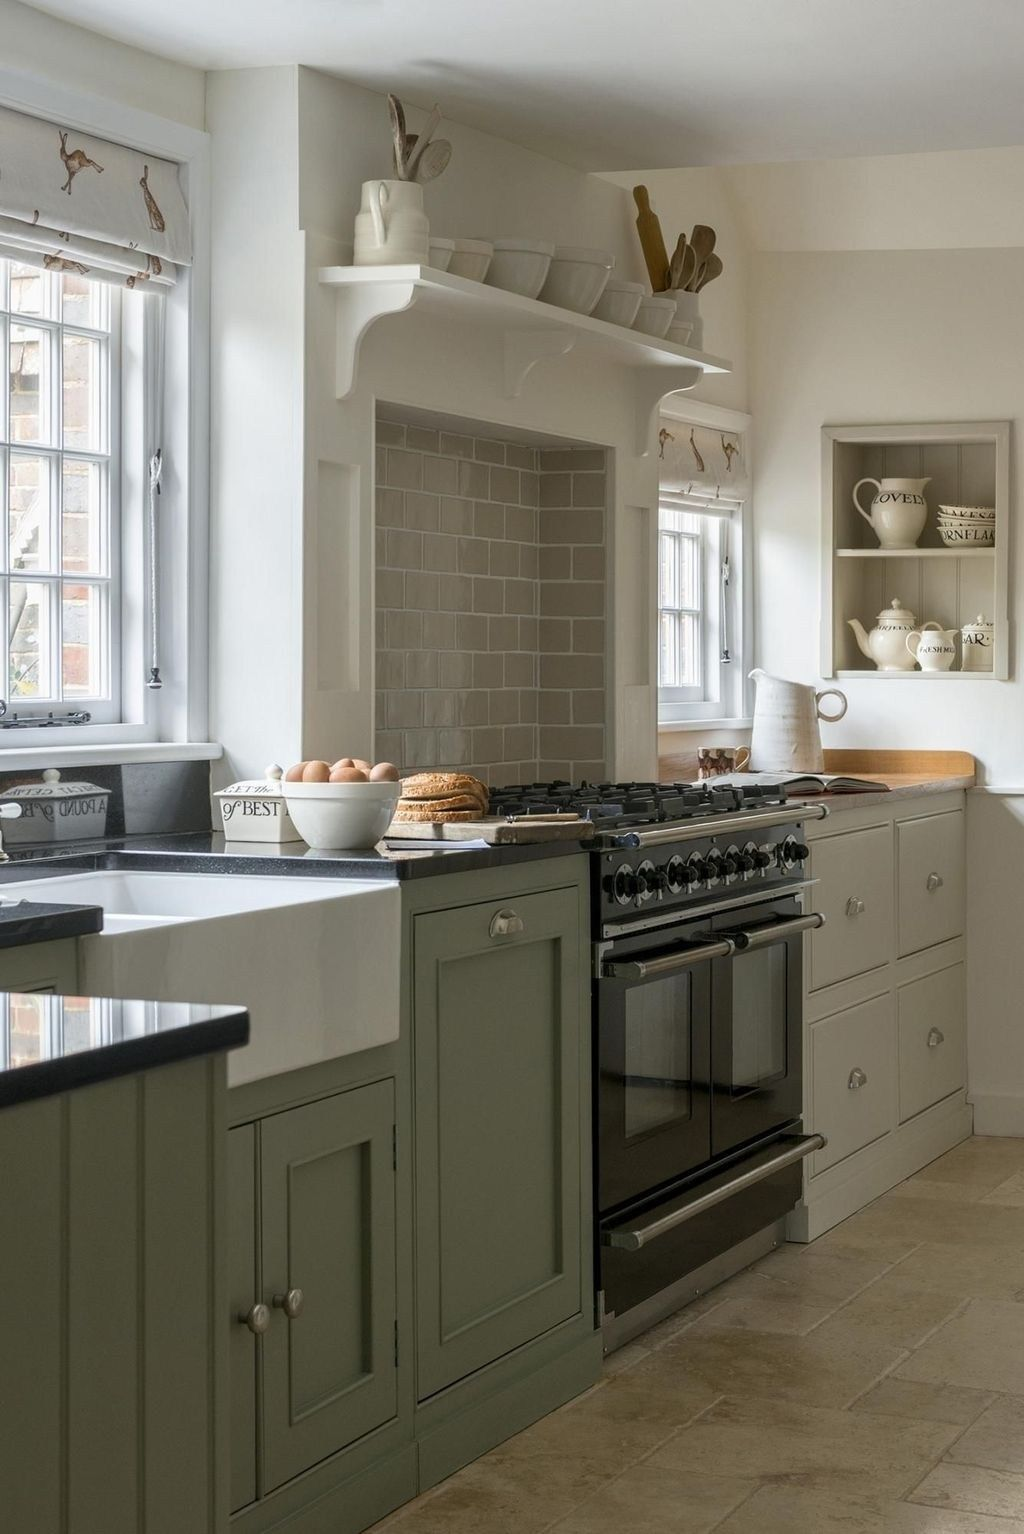 Gorgeous farmhouse kitchen ideas to get traditional accent